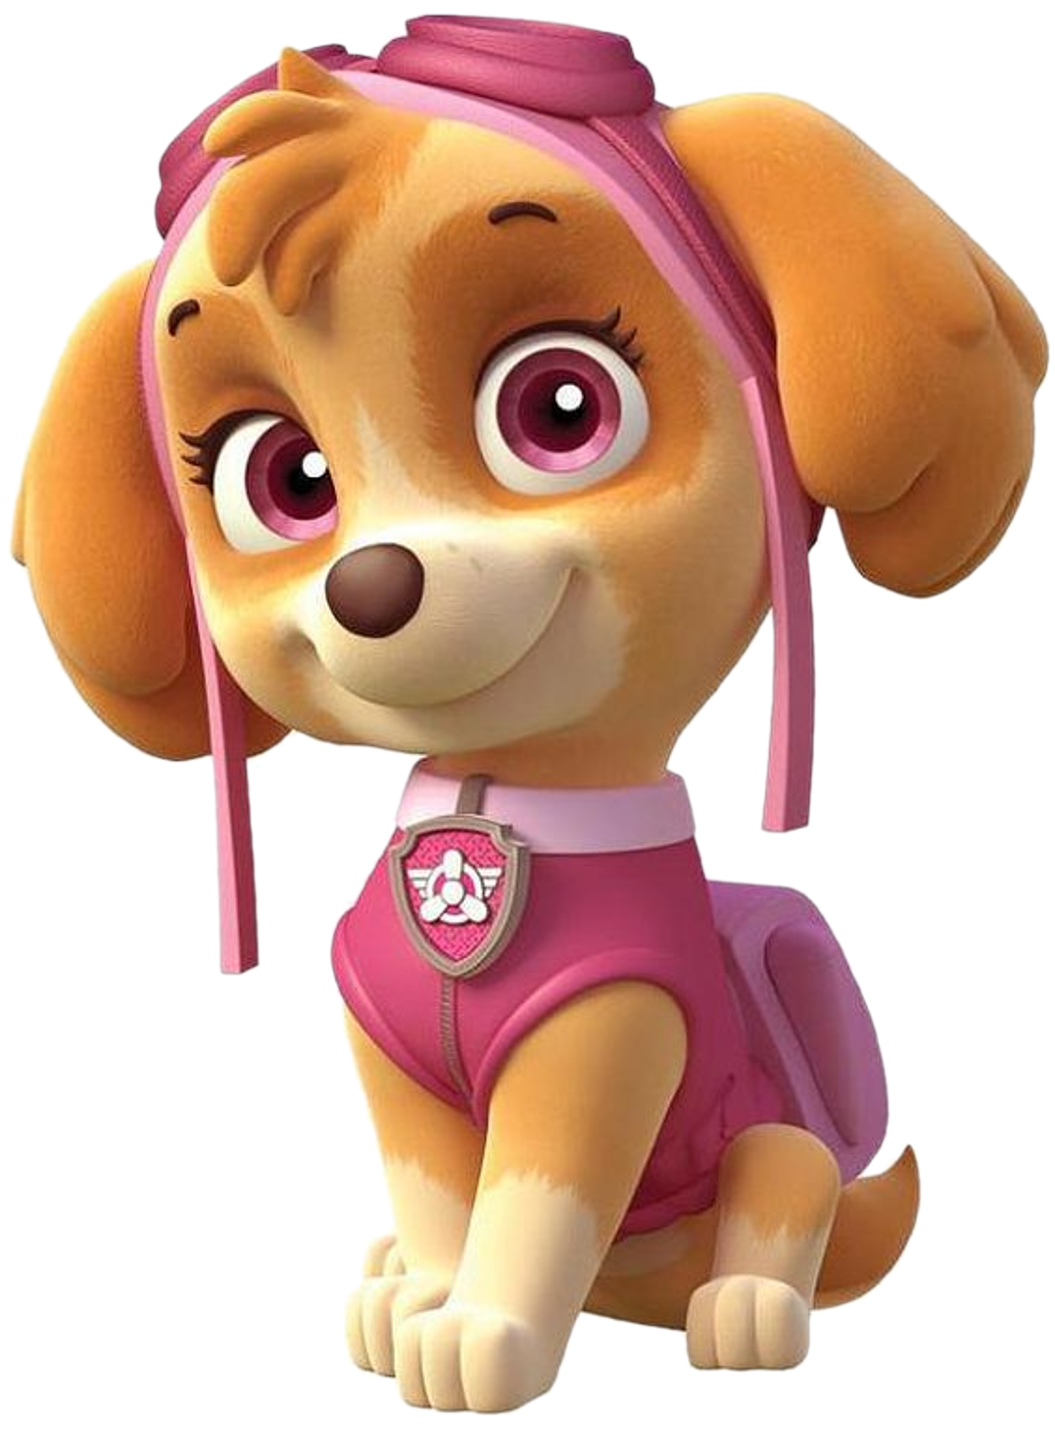 Paw patrol girl png. Cartoon characters new free